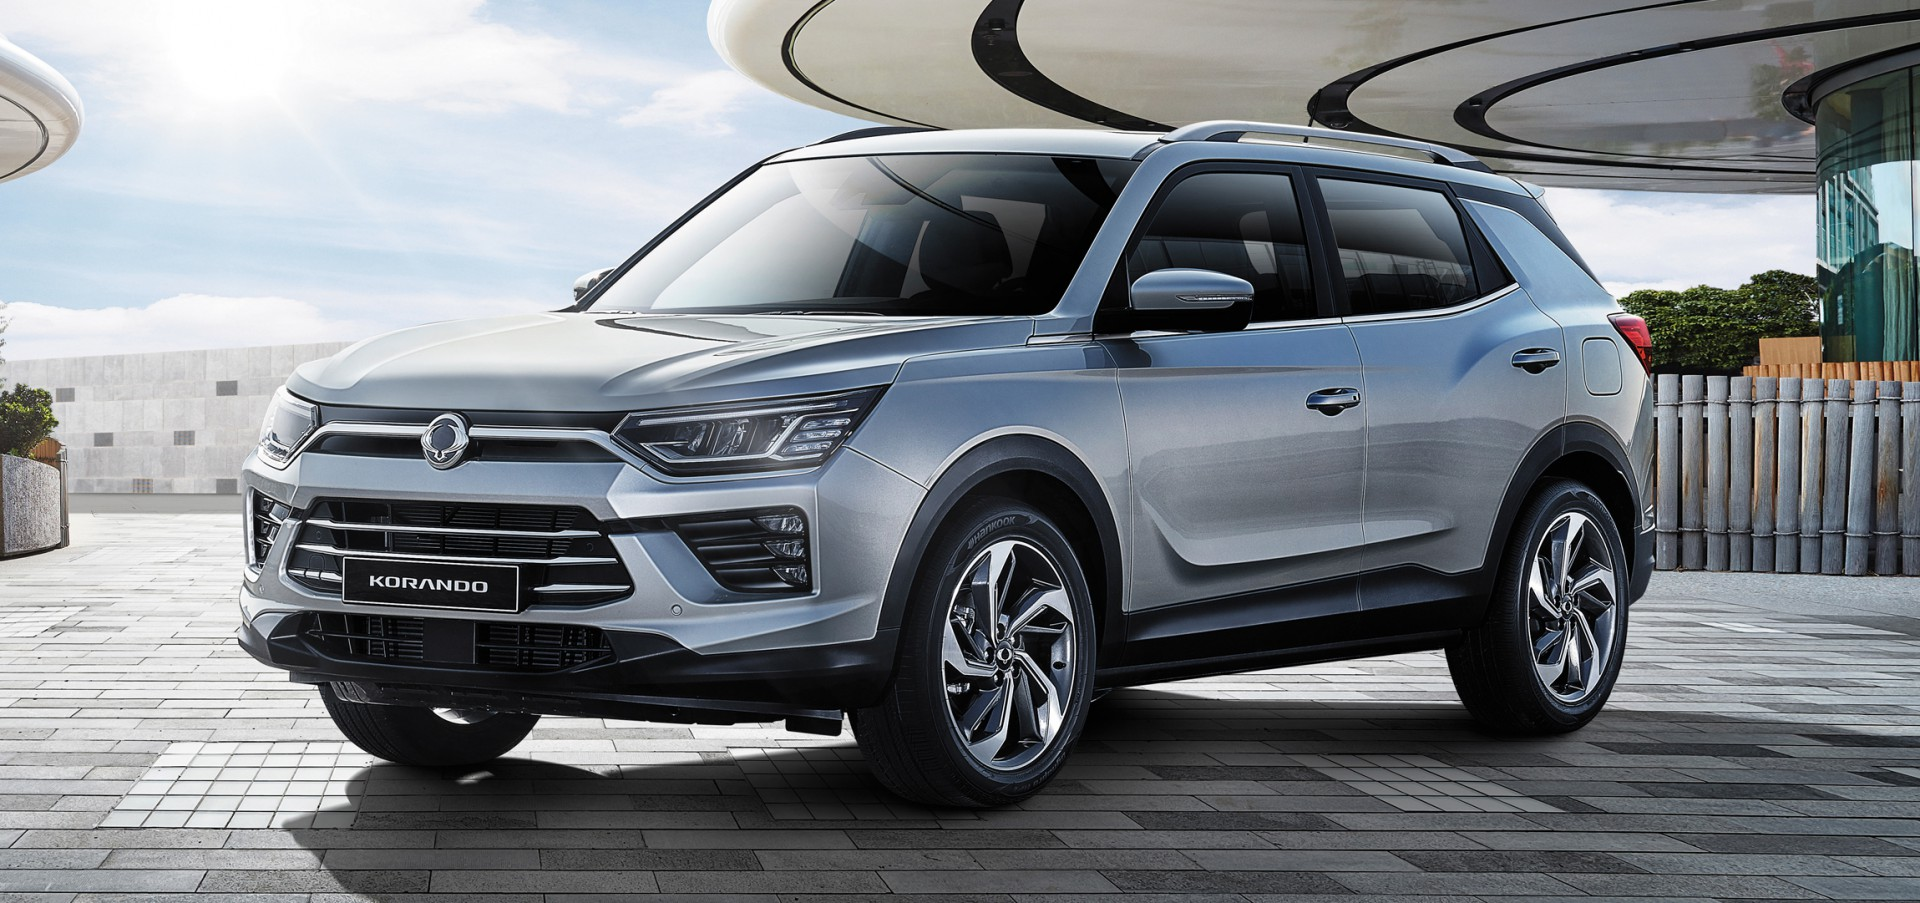 SsangYong new Tivoli - Escape from the ordinary